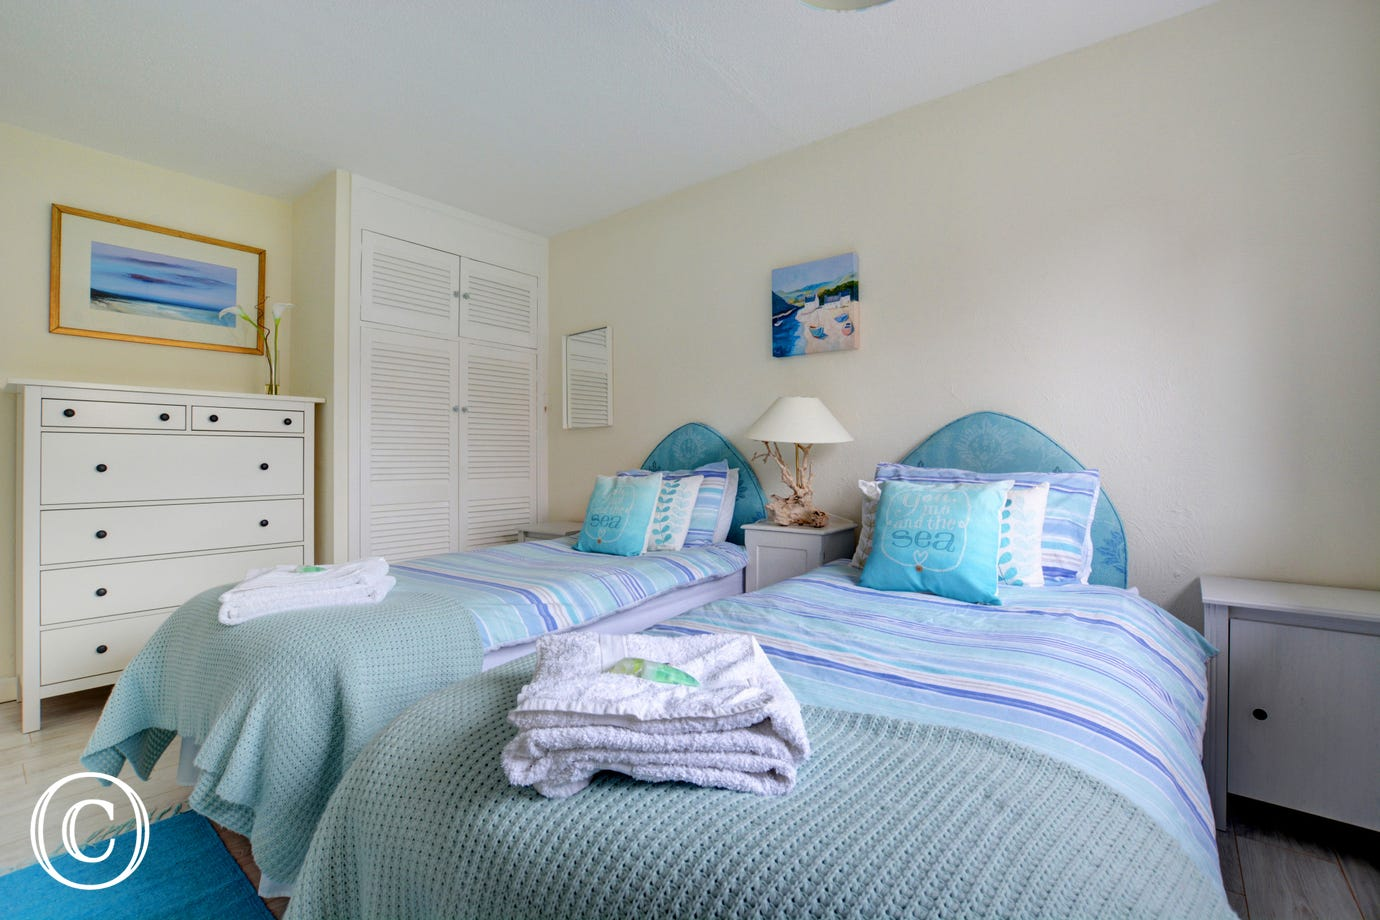 Here, looking across the twin beds, we focus on the built in wardrobe and the dressing table.